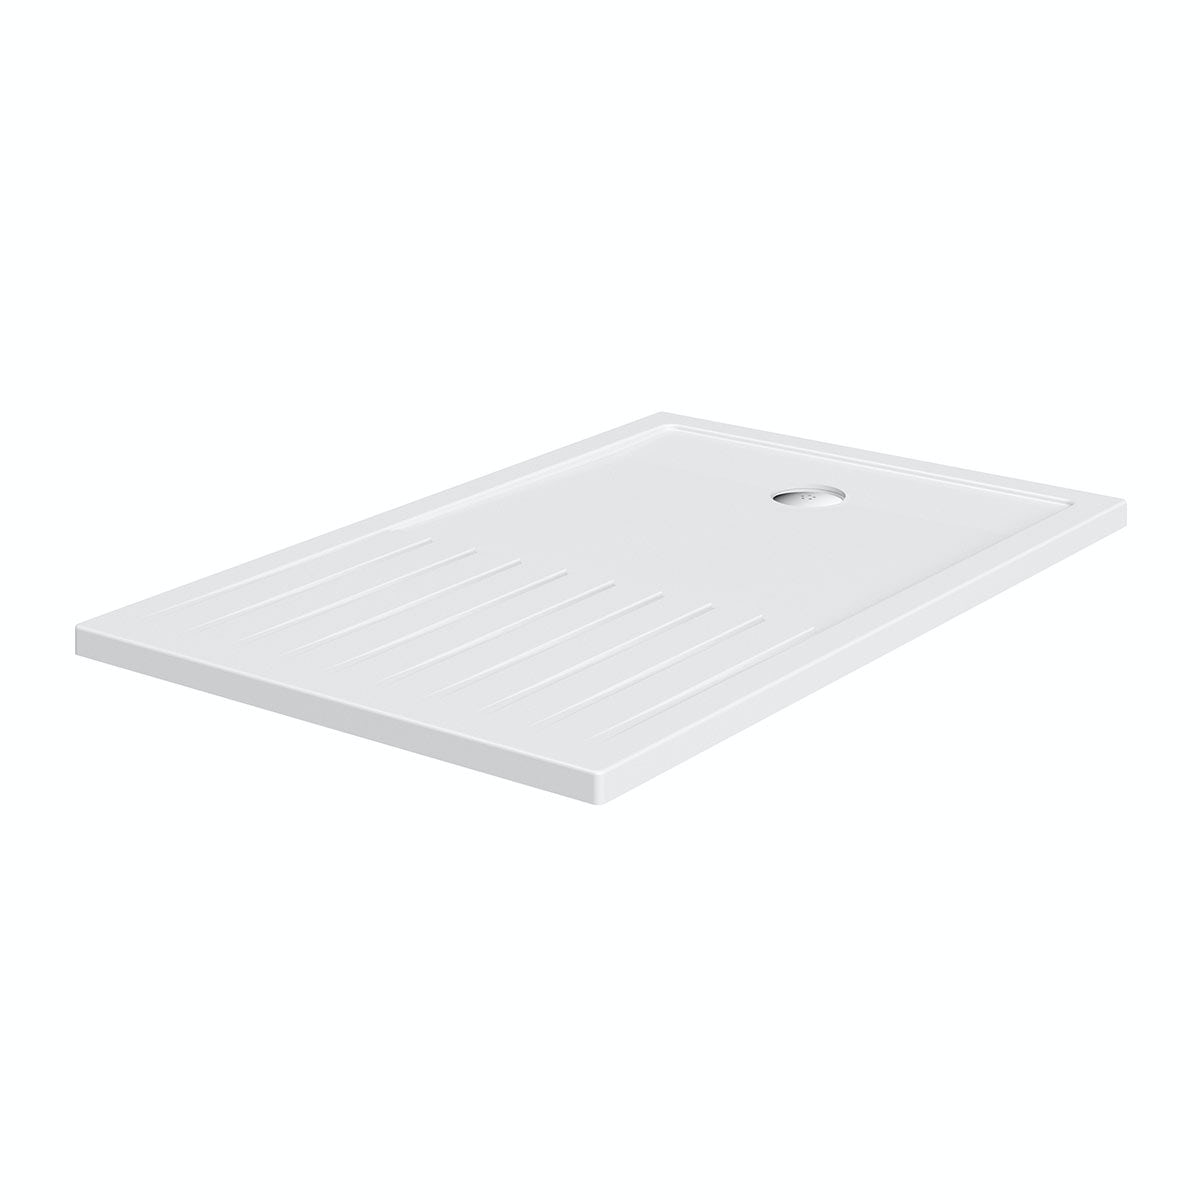 Rectangular walk in shower tray 1600 x 800 for Walk in shower tray